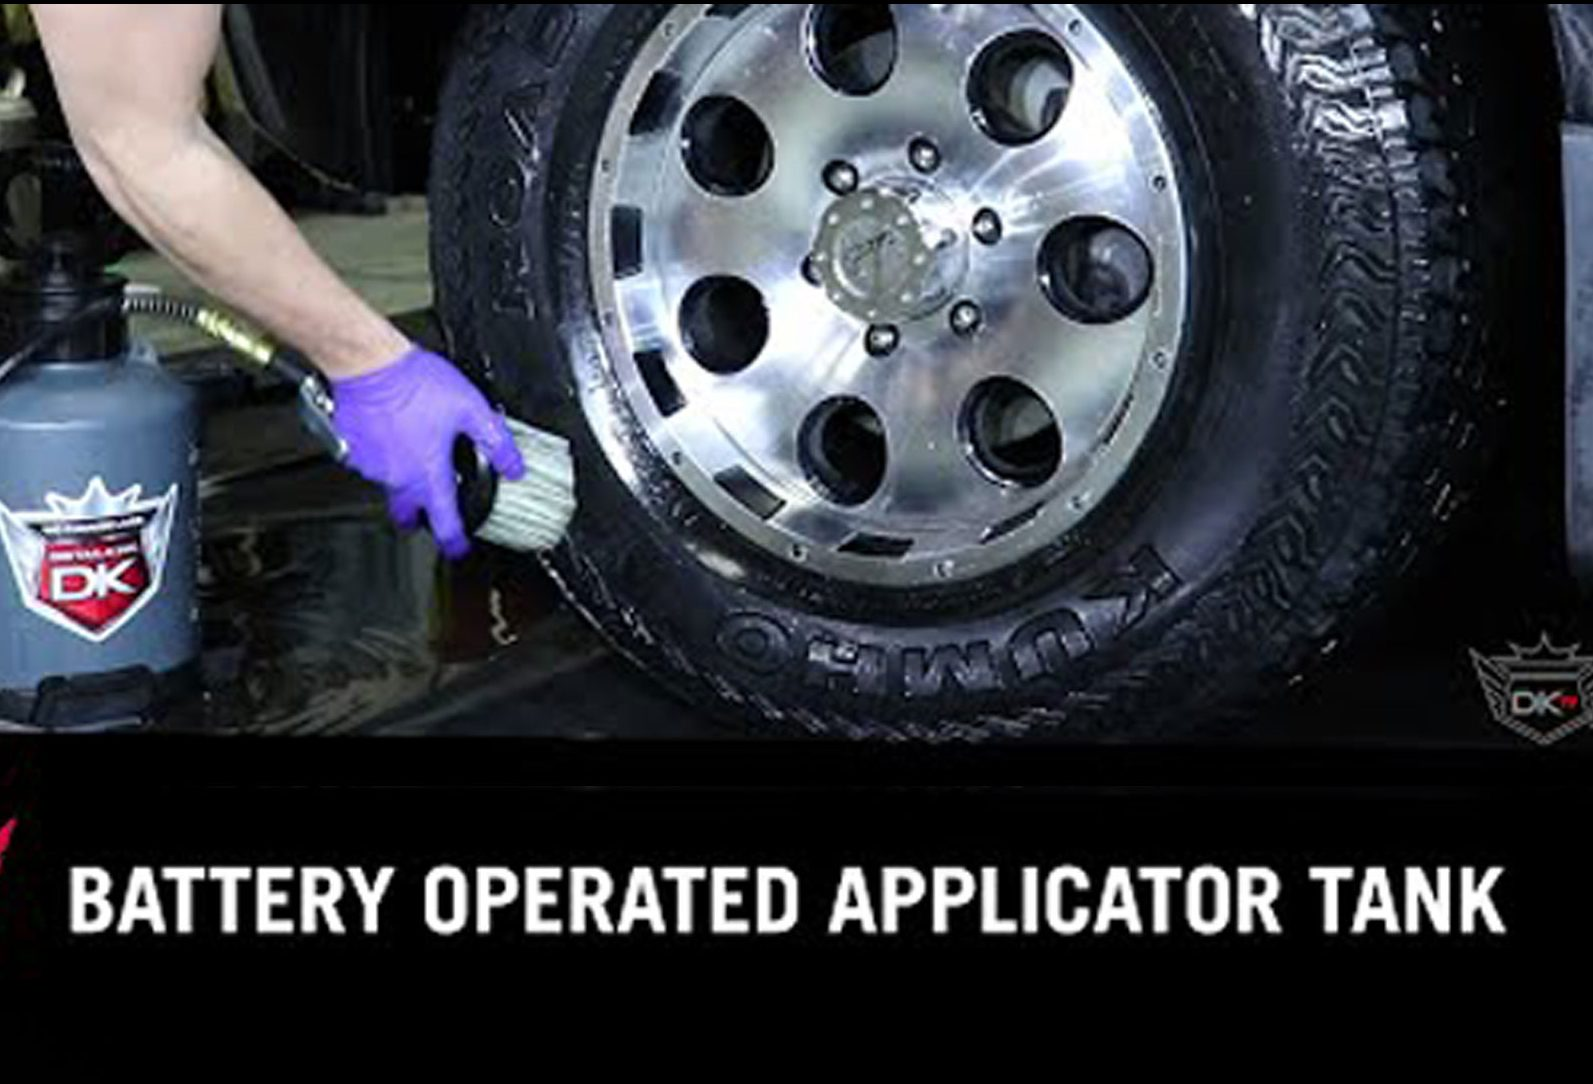 Easiest Way To Shine Your Vehicle's Tires | Battery Operated Tire Shine Applicator Tank | DIY